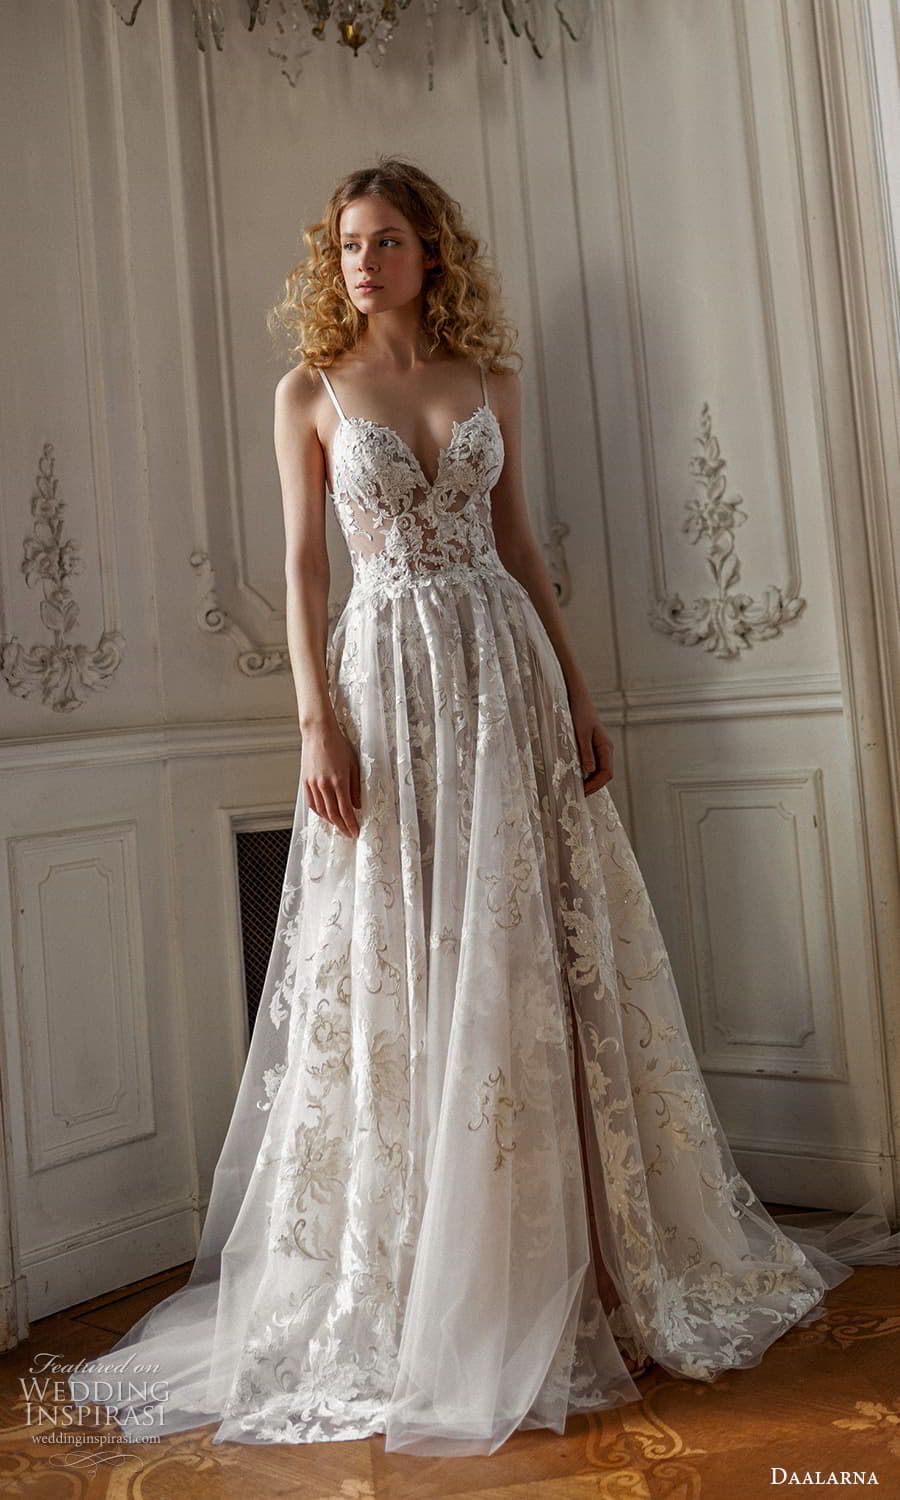 daalarna spring 2022 bridal sleeveless straps sweetheart neckline fully embellished lace a line ball gown wedding dress chapel (5) mv